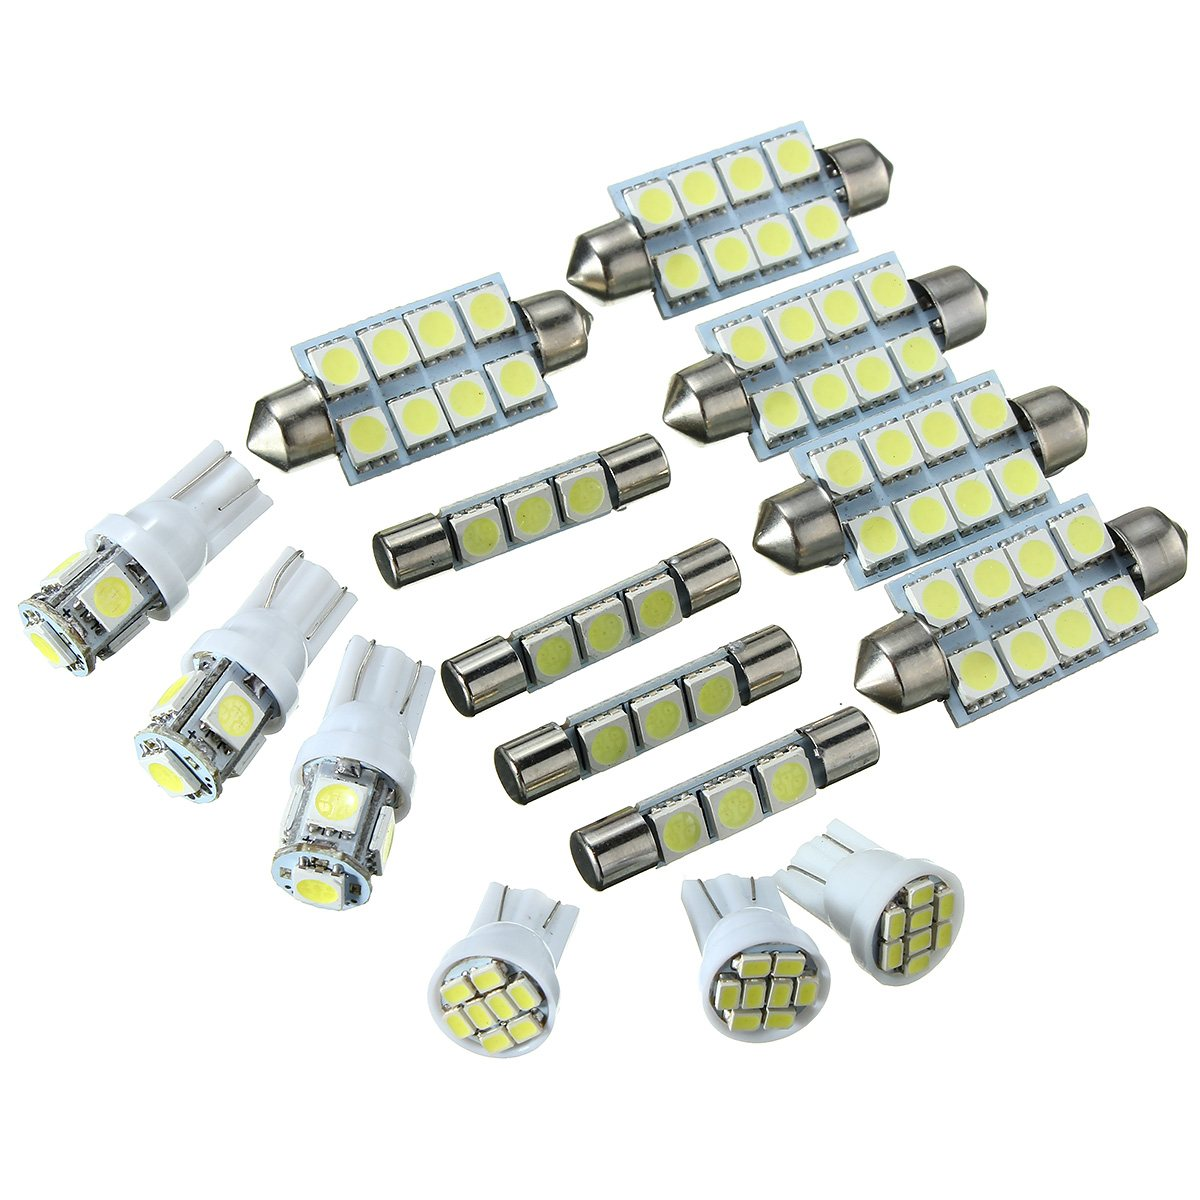 15PCS T10 5/8SMD Festoon 31/42MM LED Car Signal Lamp Light Interior Lighting Reading Lights Kit For Chevy Silverado Car Suit 2pcs 12v 31mm 36mm 39mm 41mm canbus led auto festoon light error free interior doom lamp car styling for volvo bmw audi benz